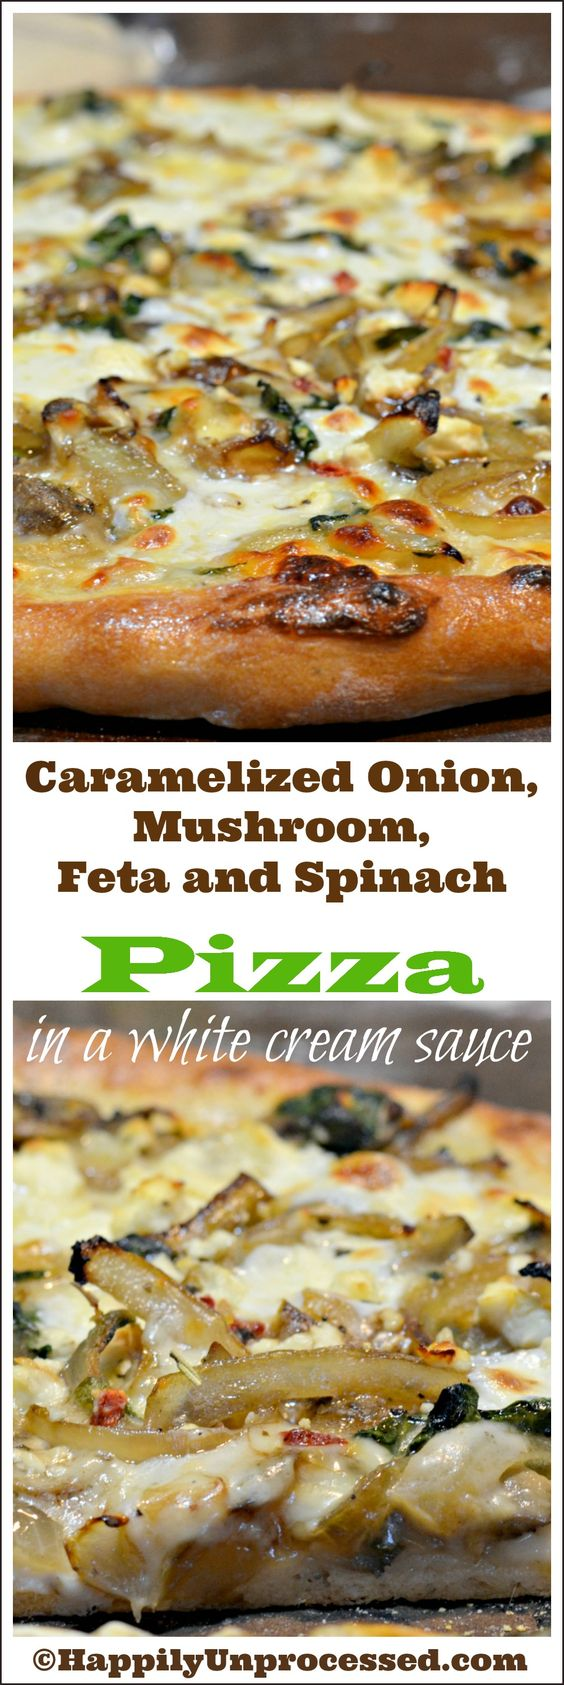 spinach pizza feta mushrooms onions spinach pizza sauces garlic sauce ...